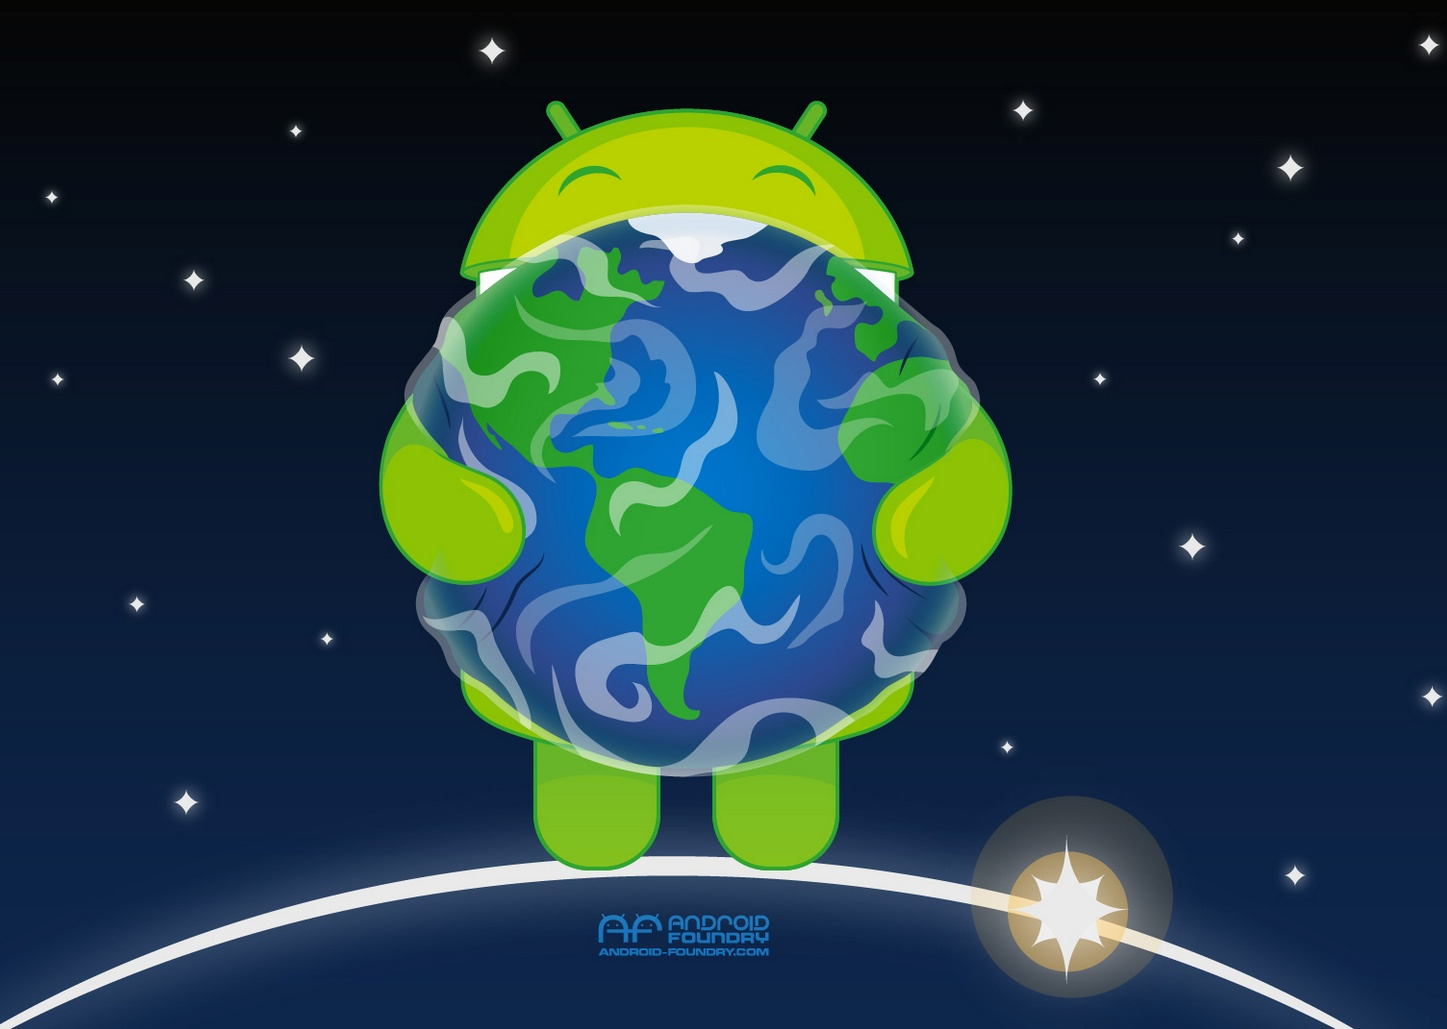 It android style, if you so choose. this wallpaper should help